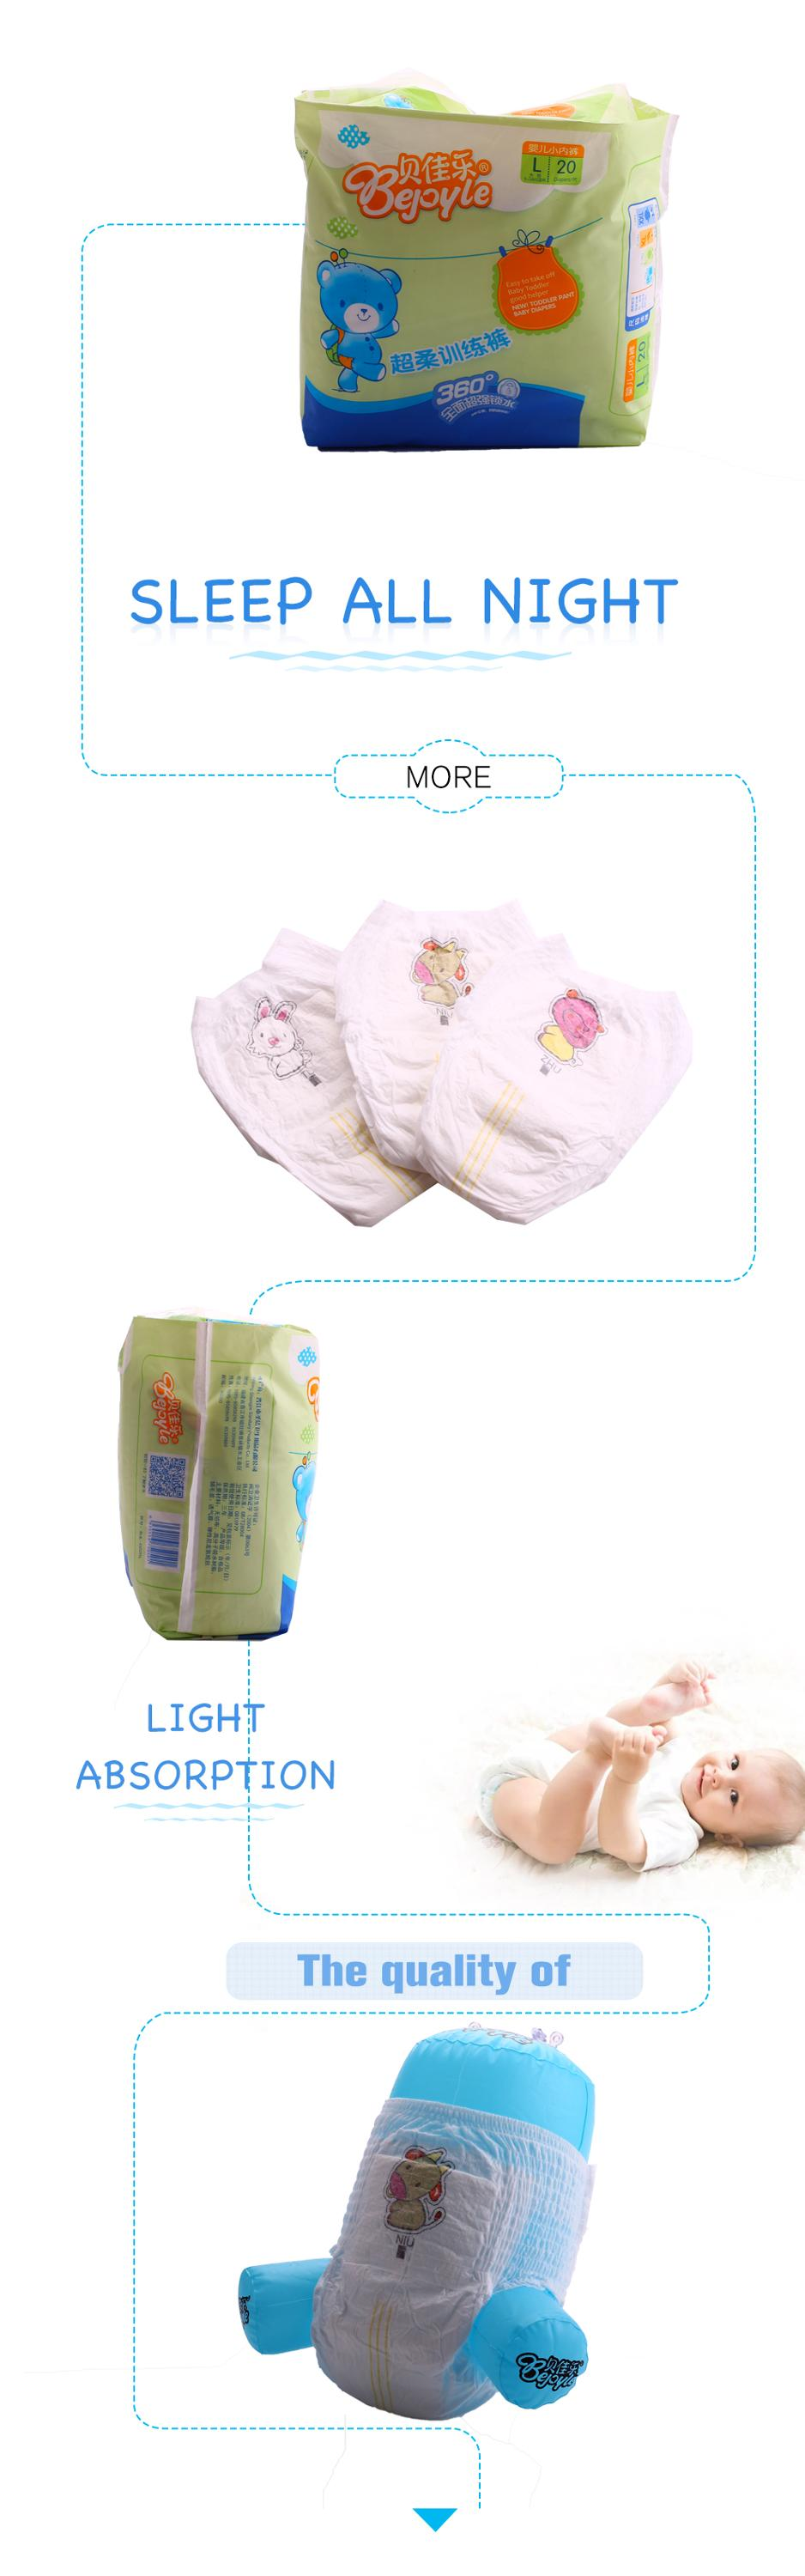 Soft Care Sleepy Baby Nappies Diapers Disposable Pull Up Baby Diaper Pants